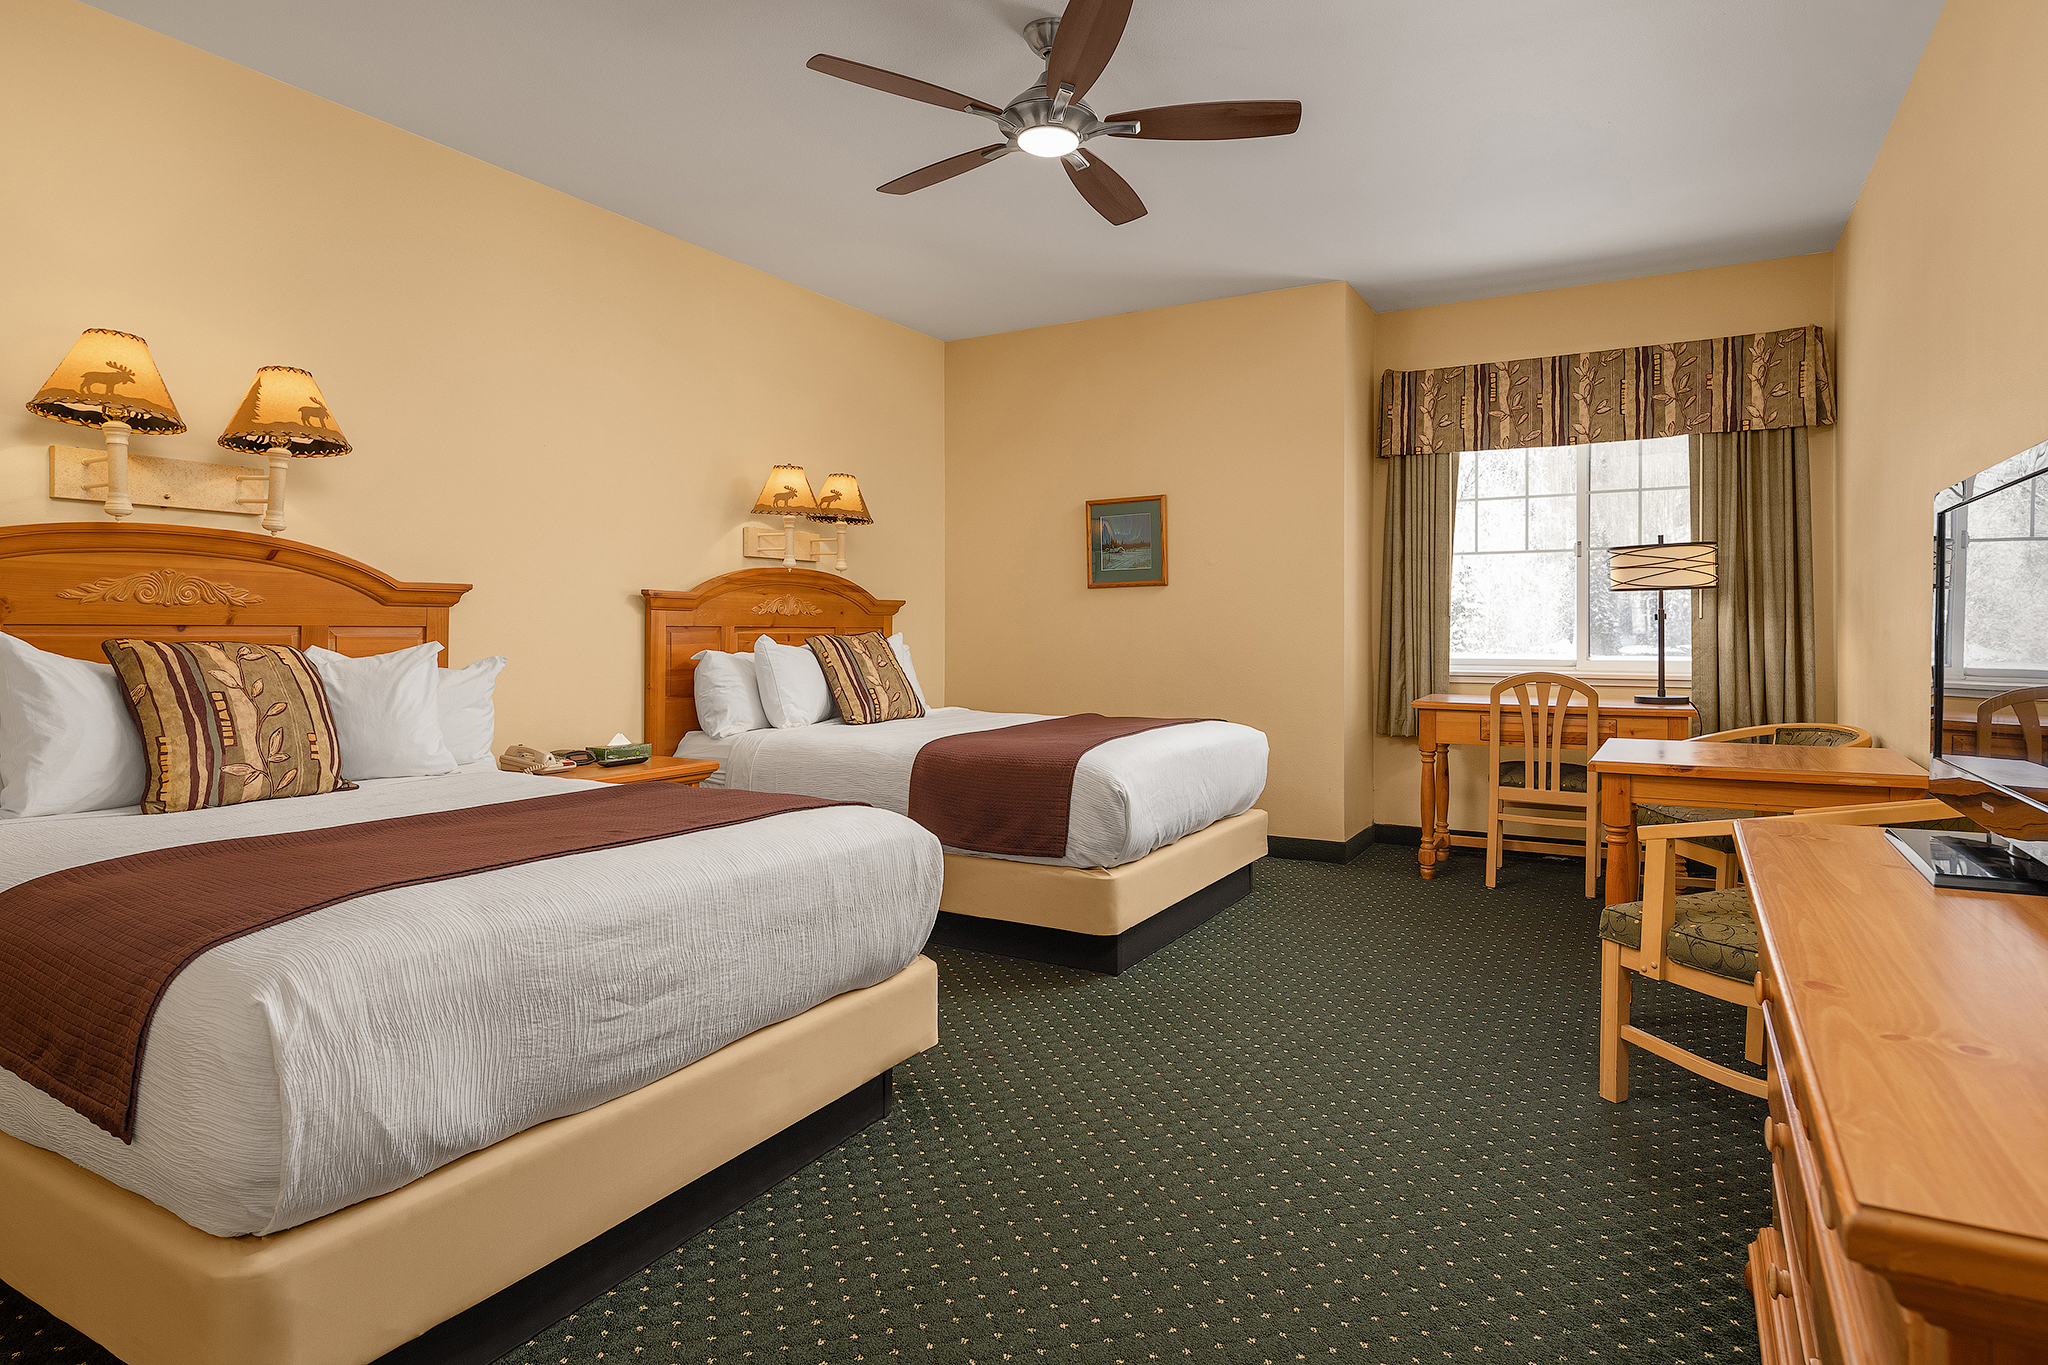 Moose Lodge Interior - 2 Queen Size Beds